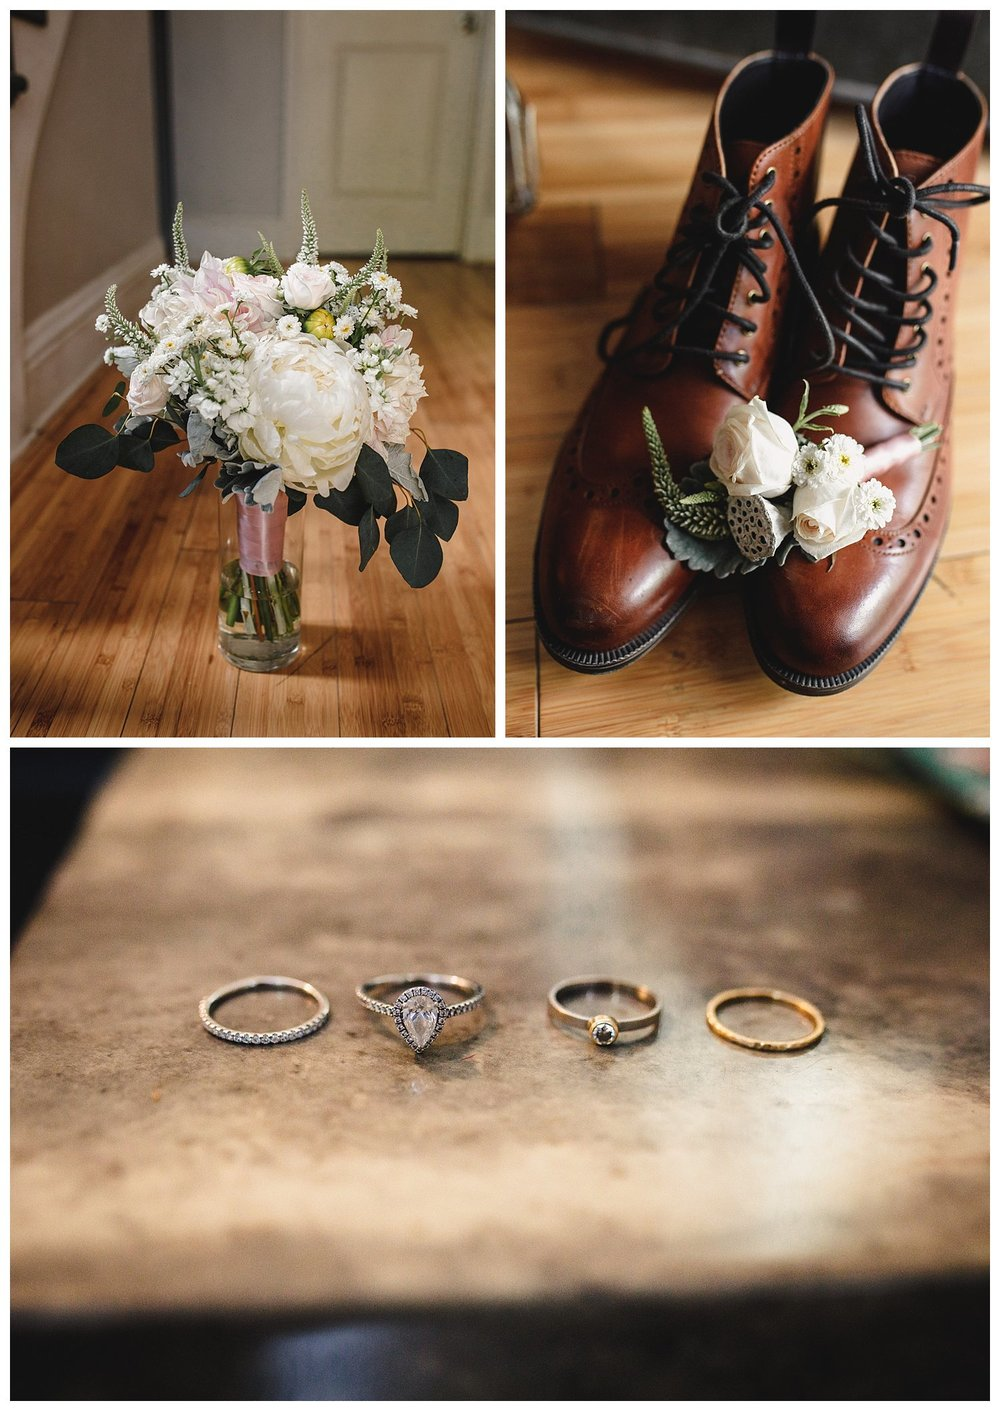 Kelsey_Diane_Photography_The_Vow_Exchange_Kansas_City_LGBT_Friendly_Wedding_Photographer_Kansas_City_Scout_Ica_0698.jpg